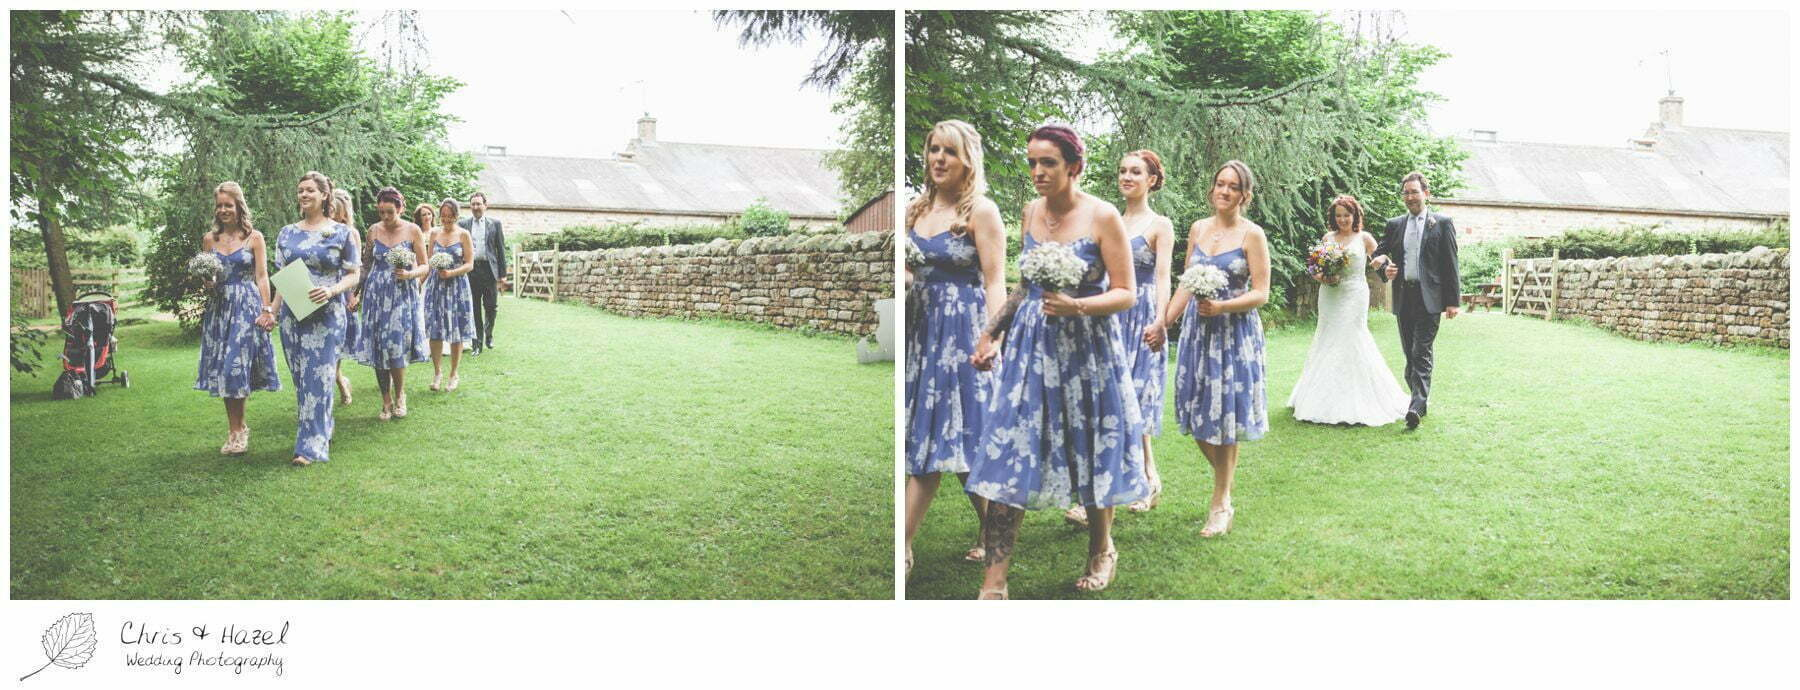 floral bridesmaid dresses, woodland, forest, ceremony, outdoor, forest wedding, woodland wedding, eco wedding, love letters, wedding, Eccup Wedding Photographer, Lineham Farm, Wedding Photography Leeds, Chris and Hazel Wedding Photography, Richard Wyatt, Laura Kelly